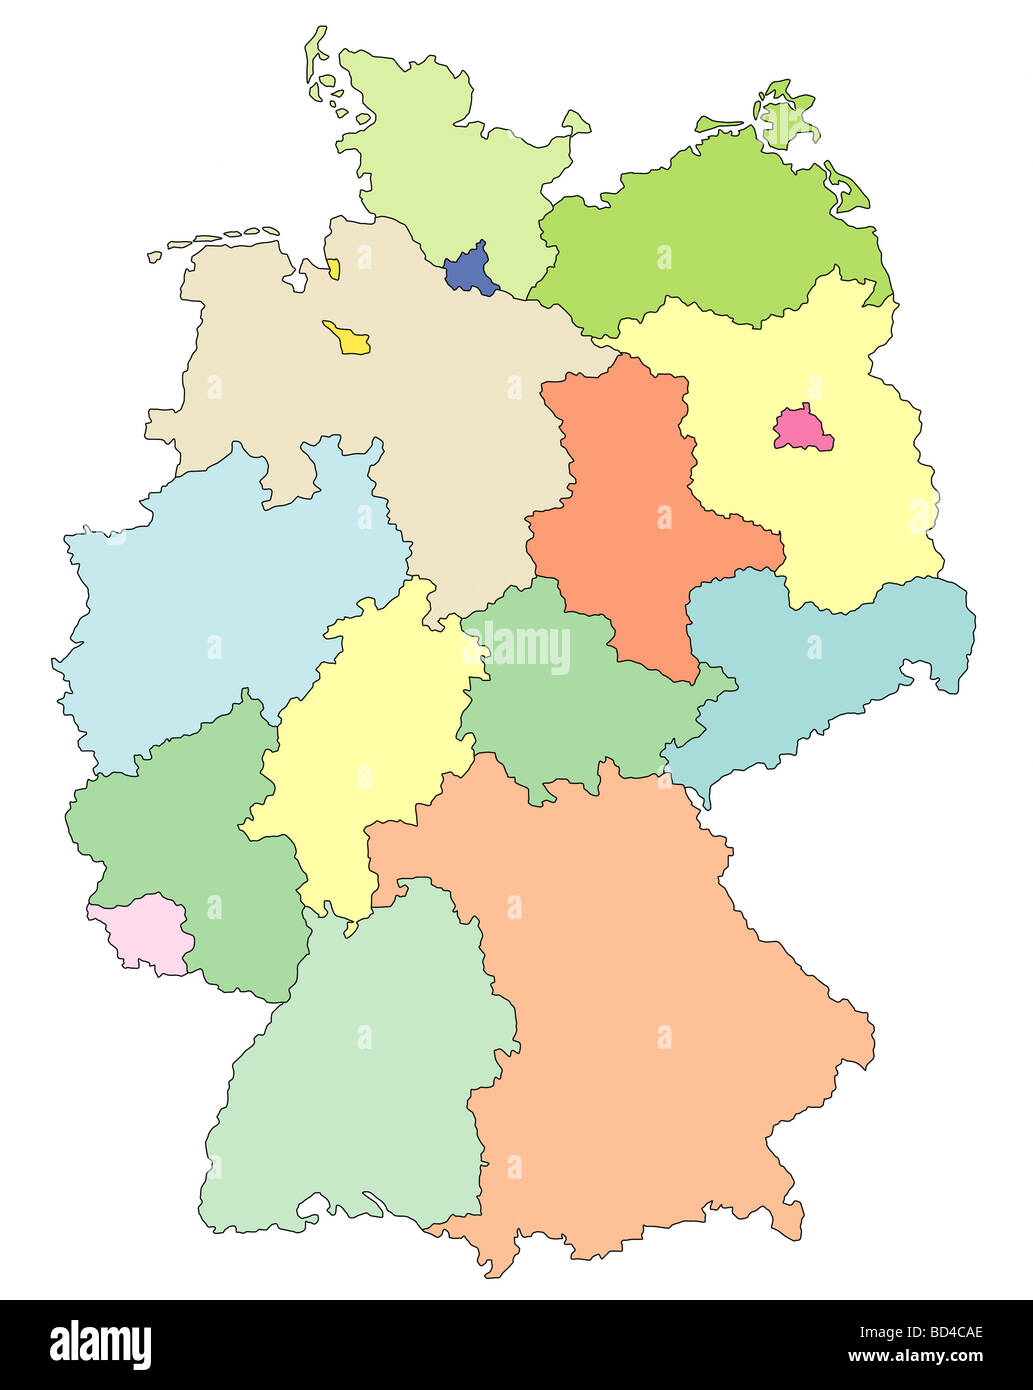 Germany map with States Stock Photo: 25298406 - Alamy